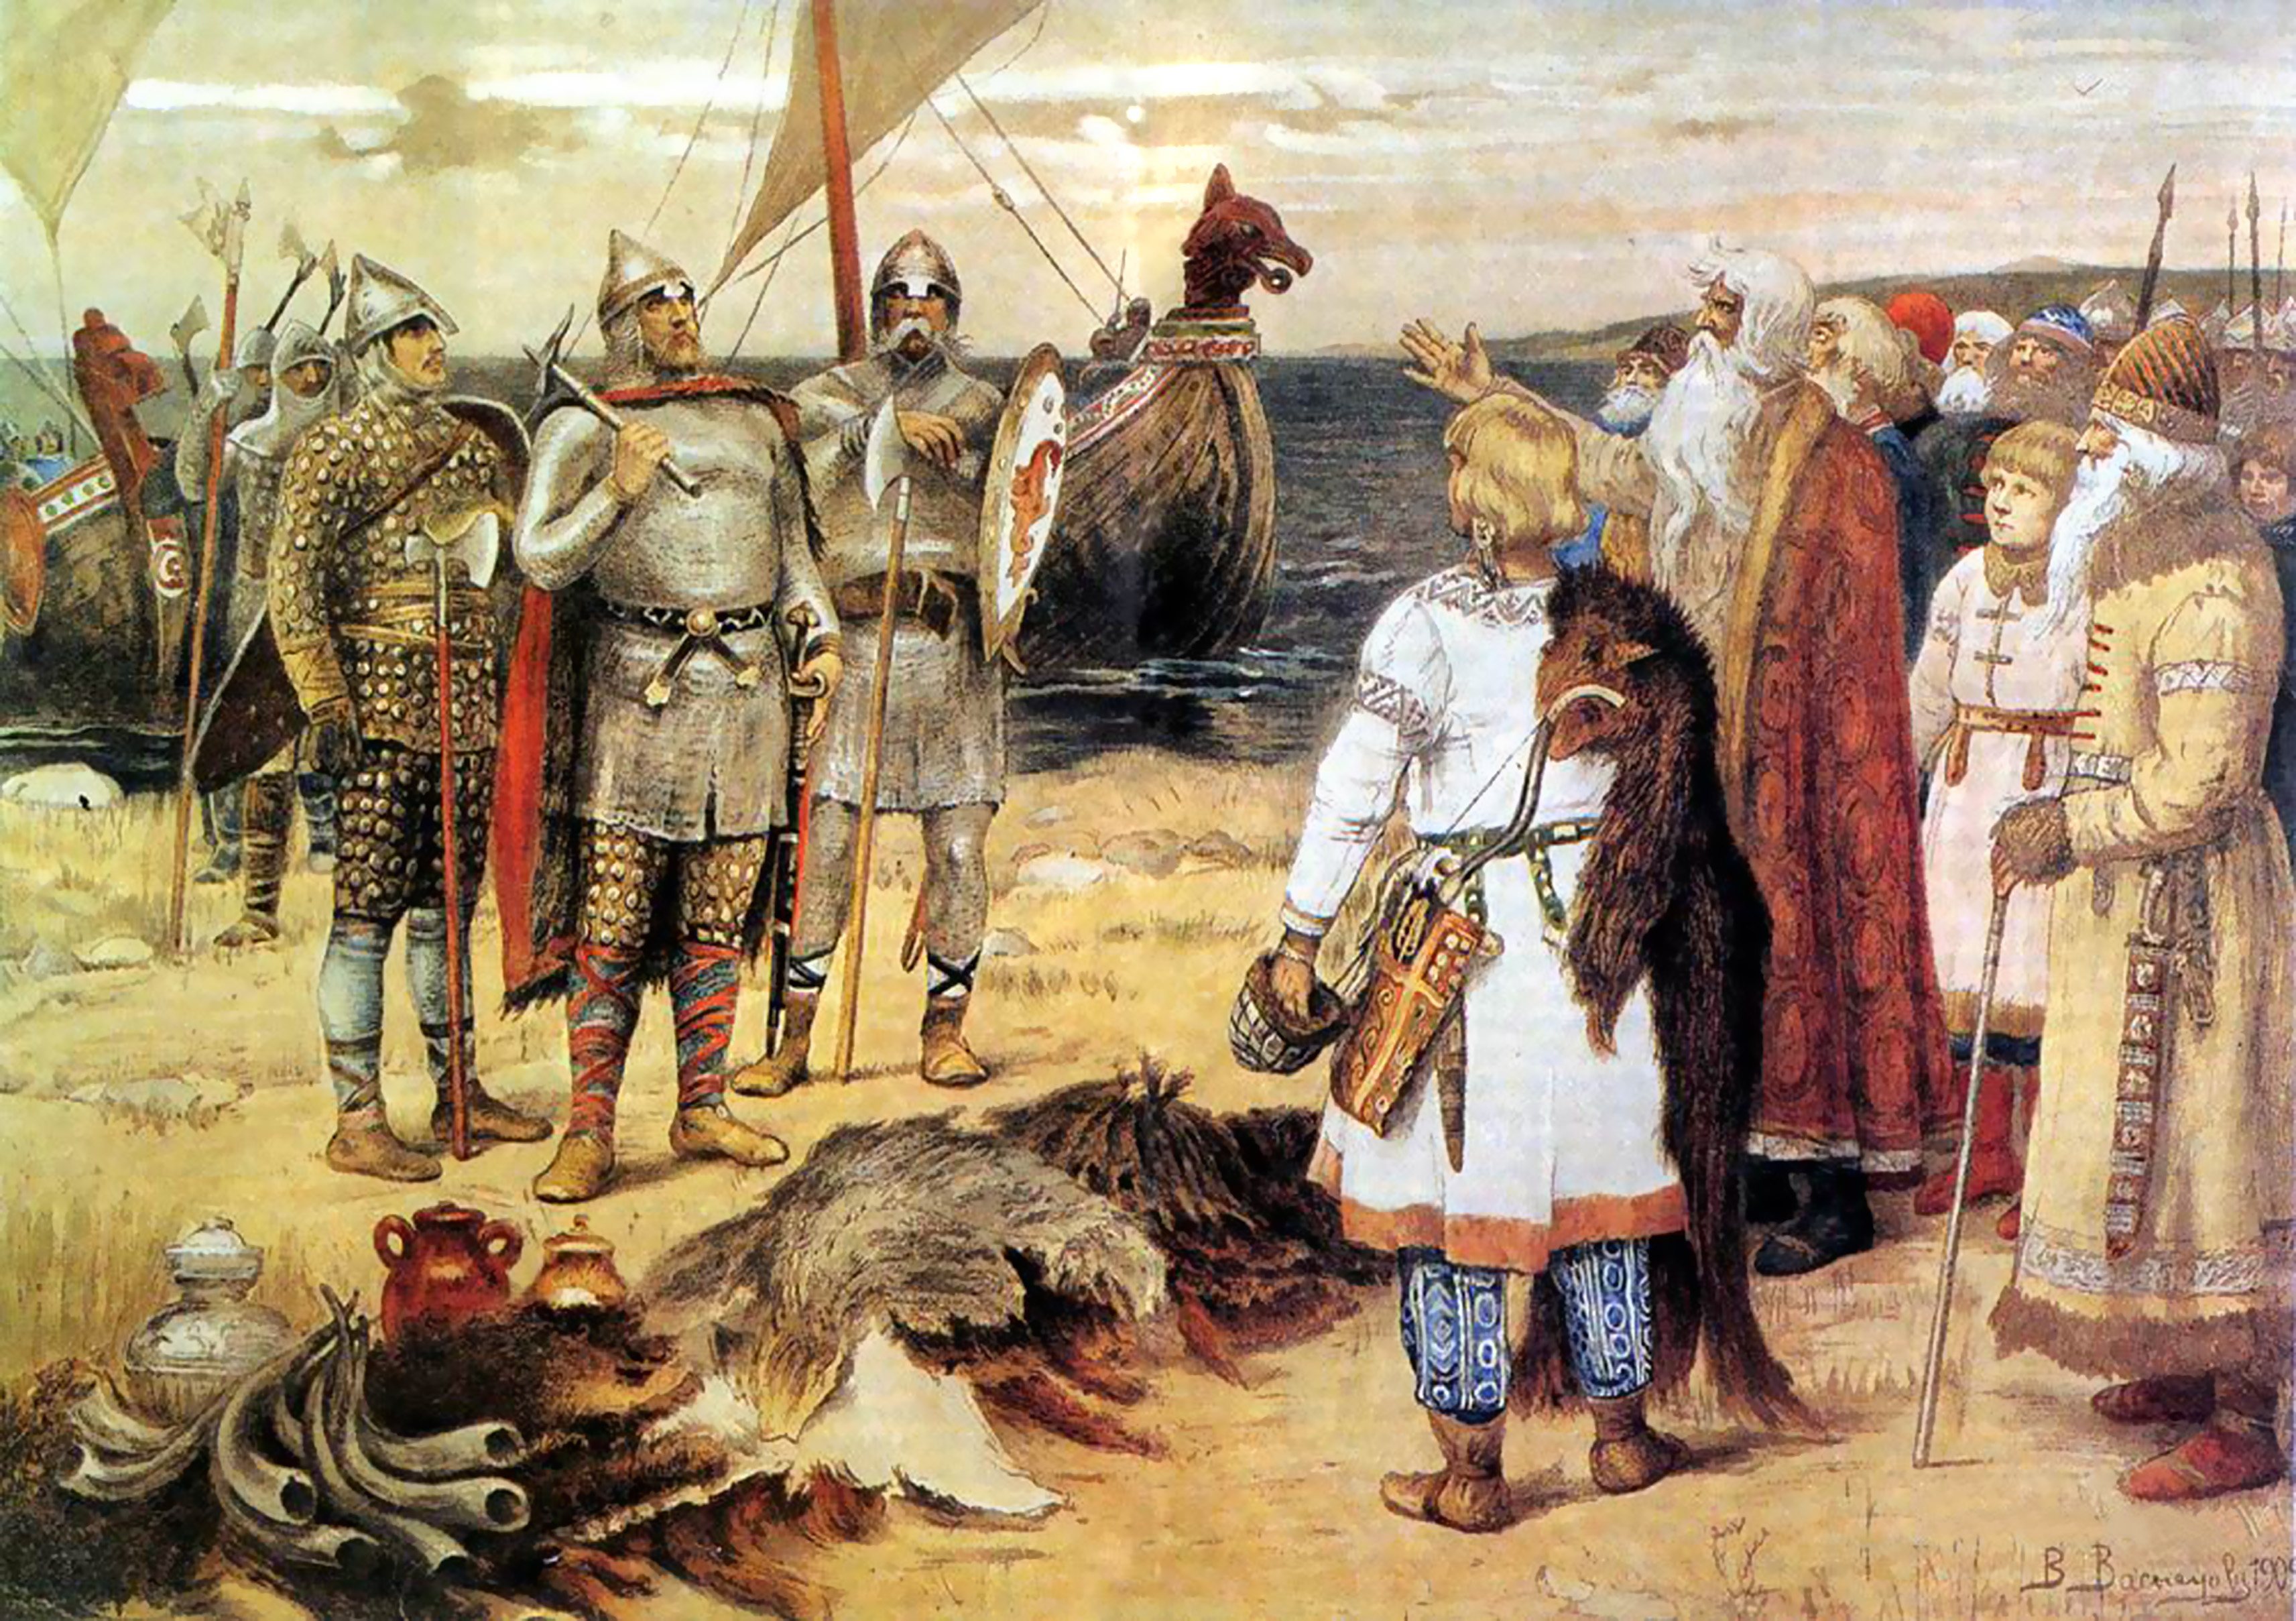 Viktor Vasnetsov. The Invitation of the Varangians: Rurik and his brothers arrive in Staraya Ladoga (1909)